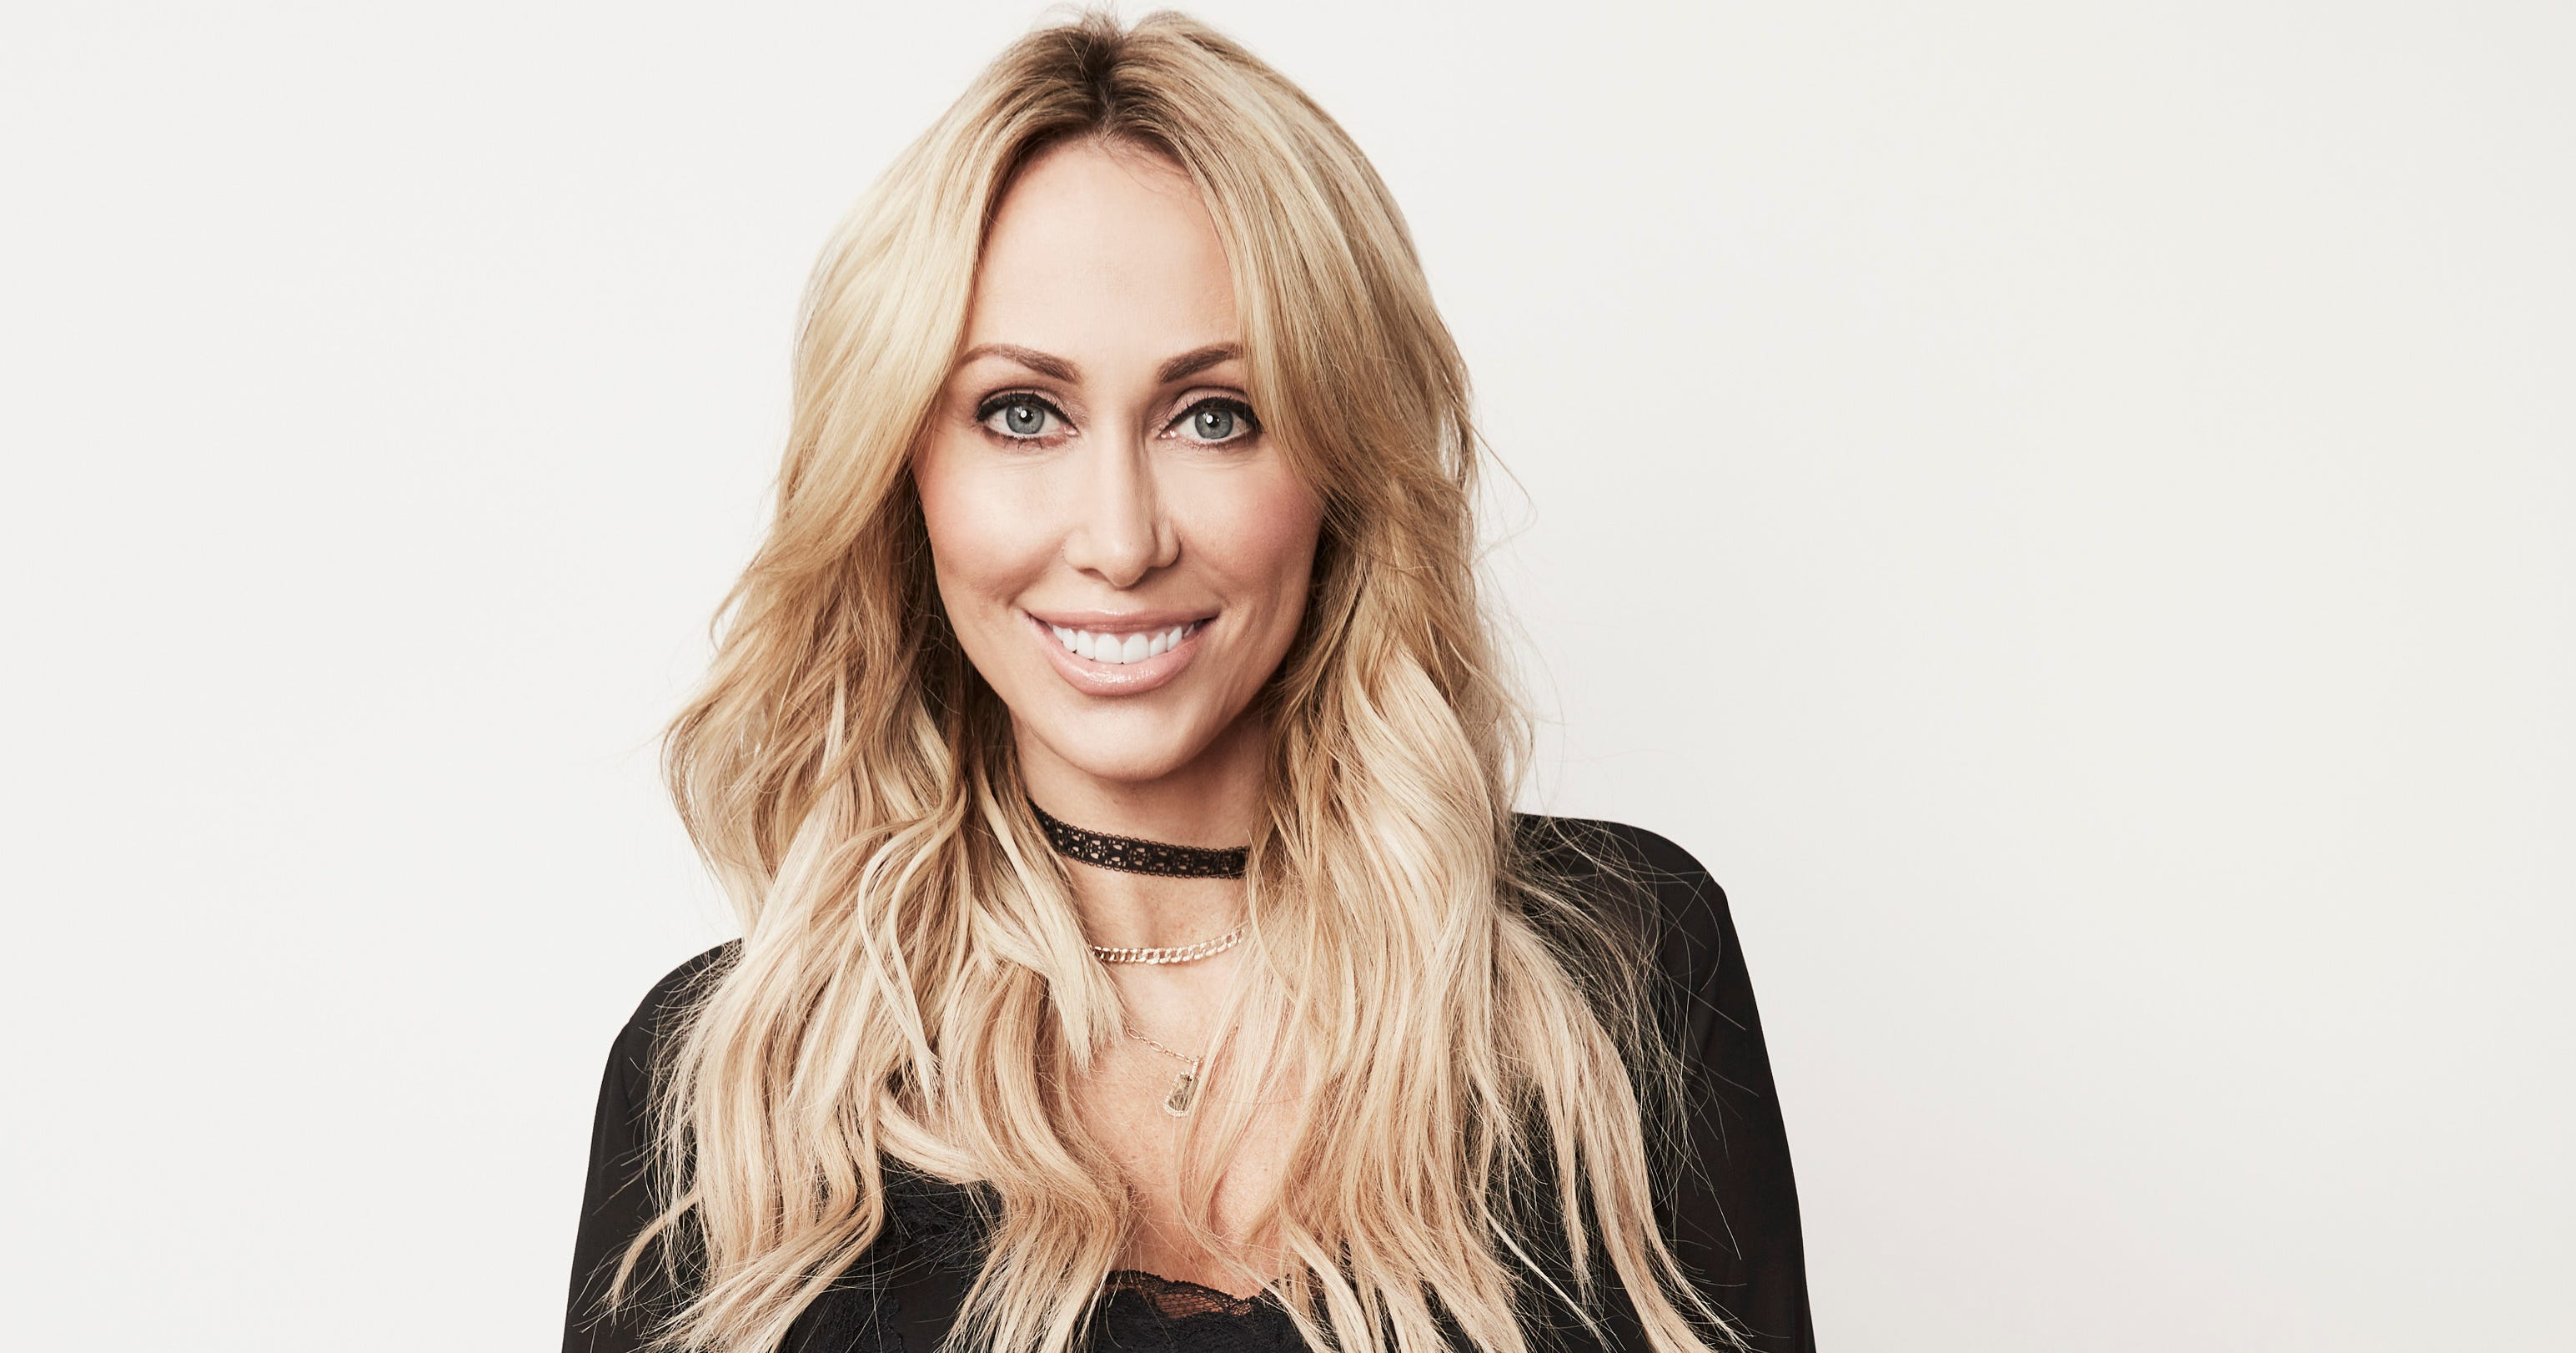 Tish Cyrus Miley Mom Manager Interview New Candle Line